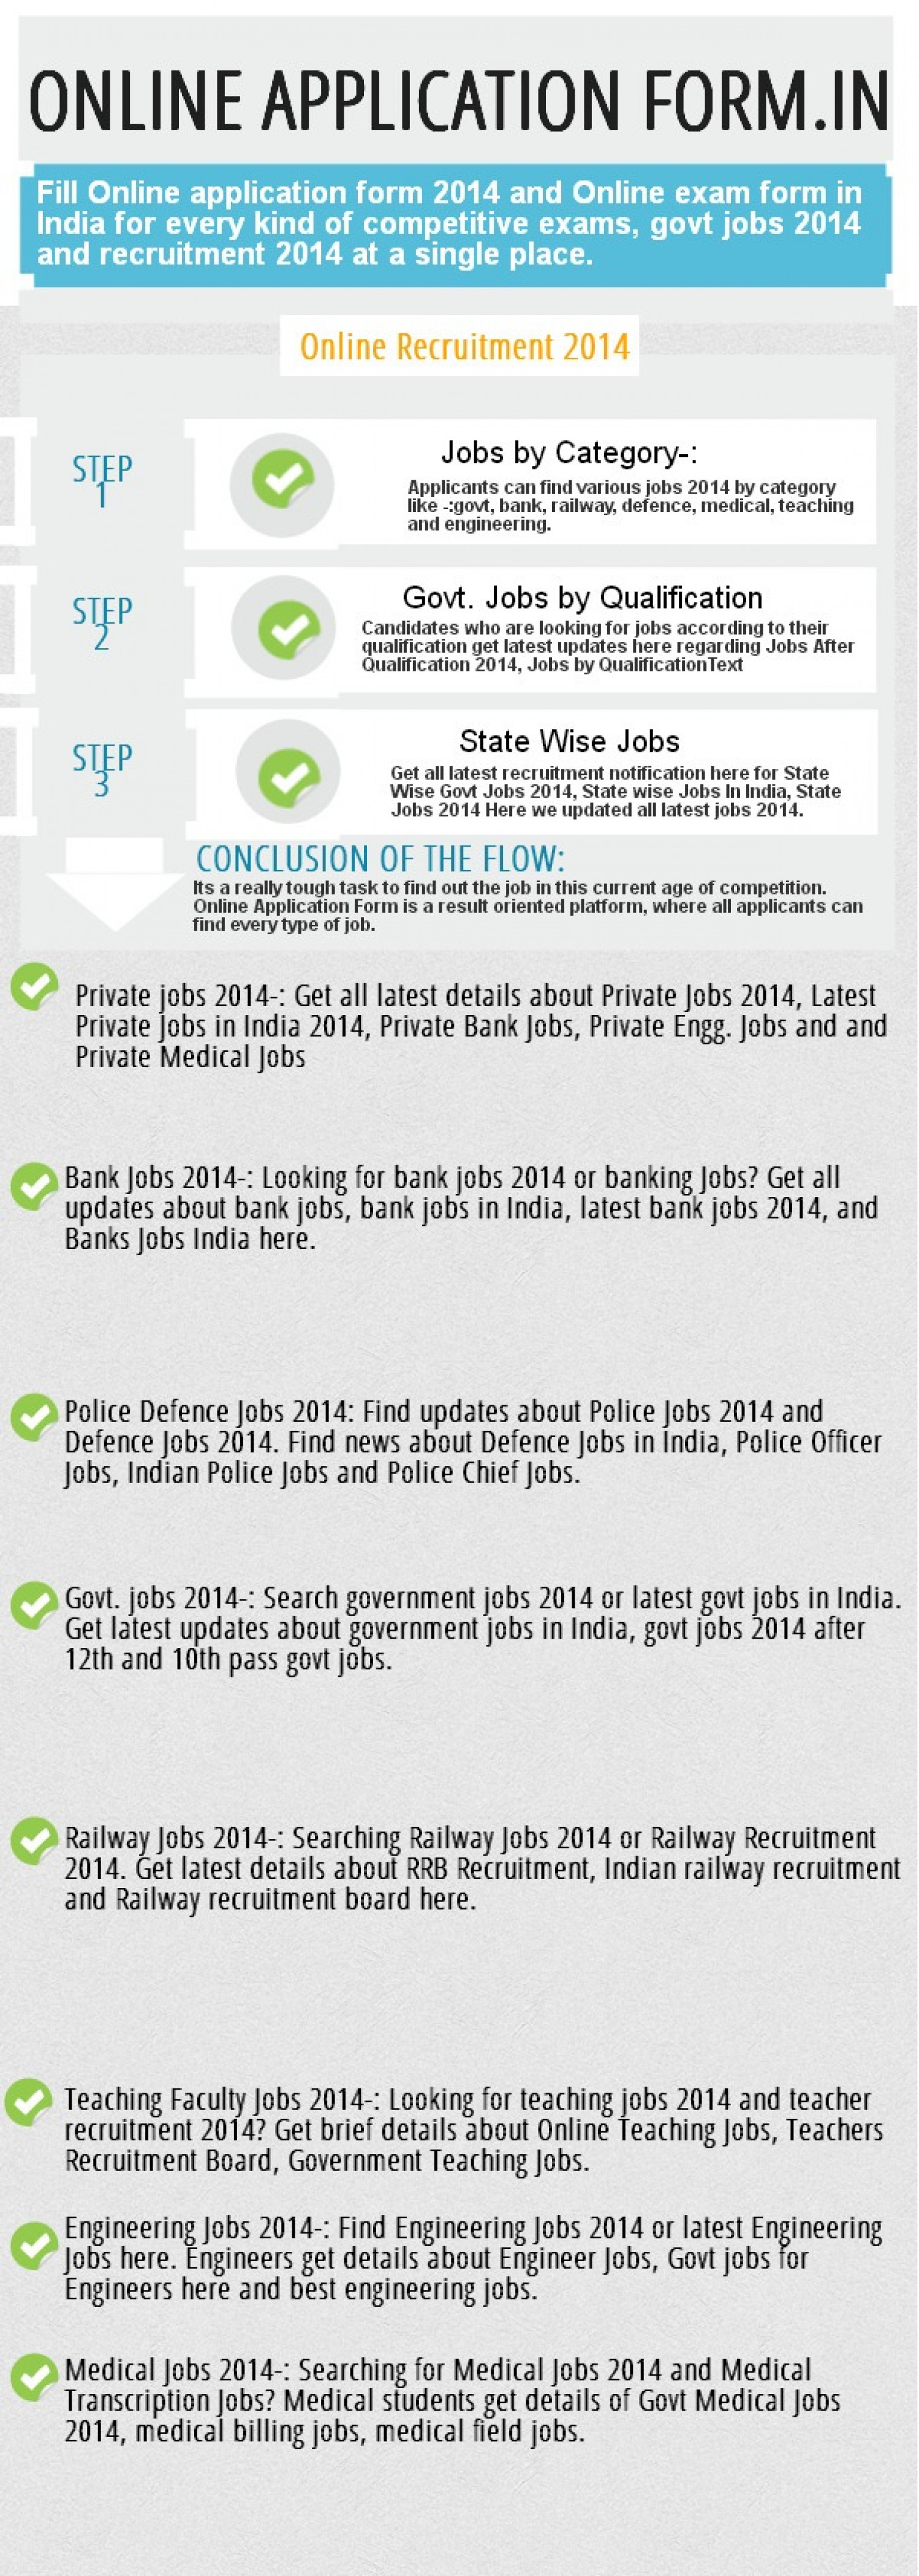 Online Application Form 2014| Online Exam Form| Recruitment 2014 Infographic